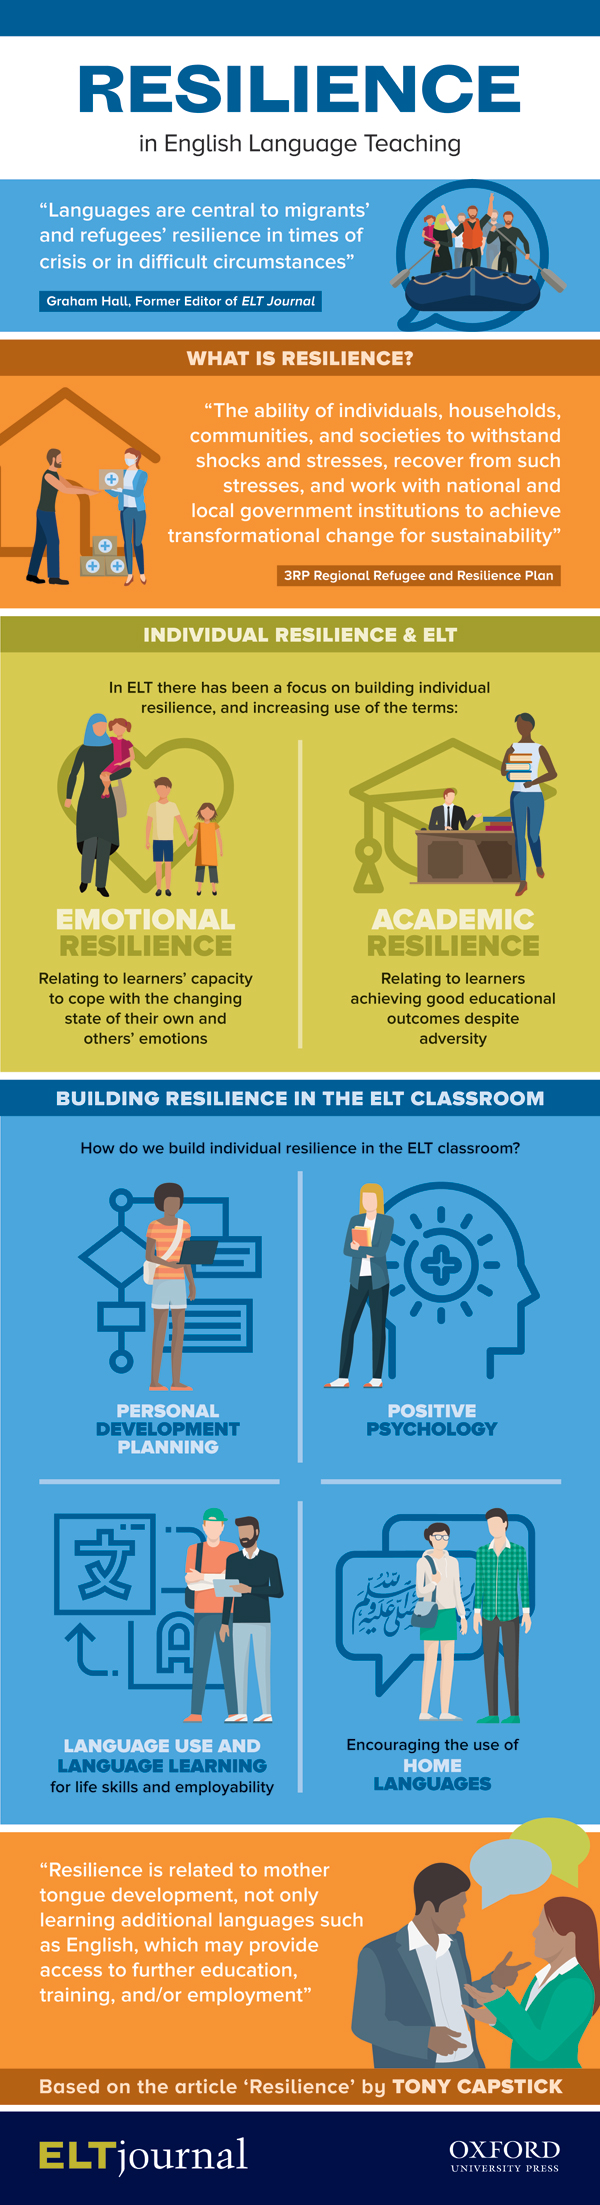 Resilience in English Language Teaching